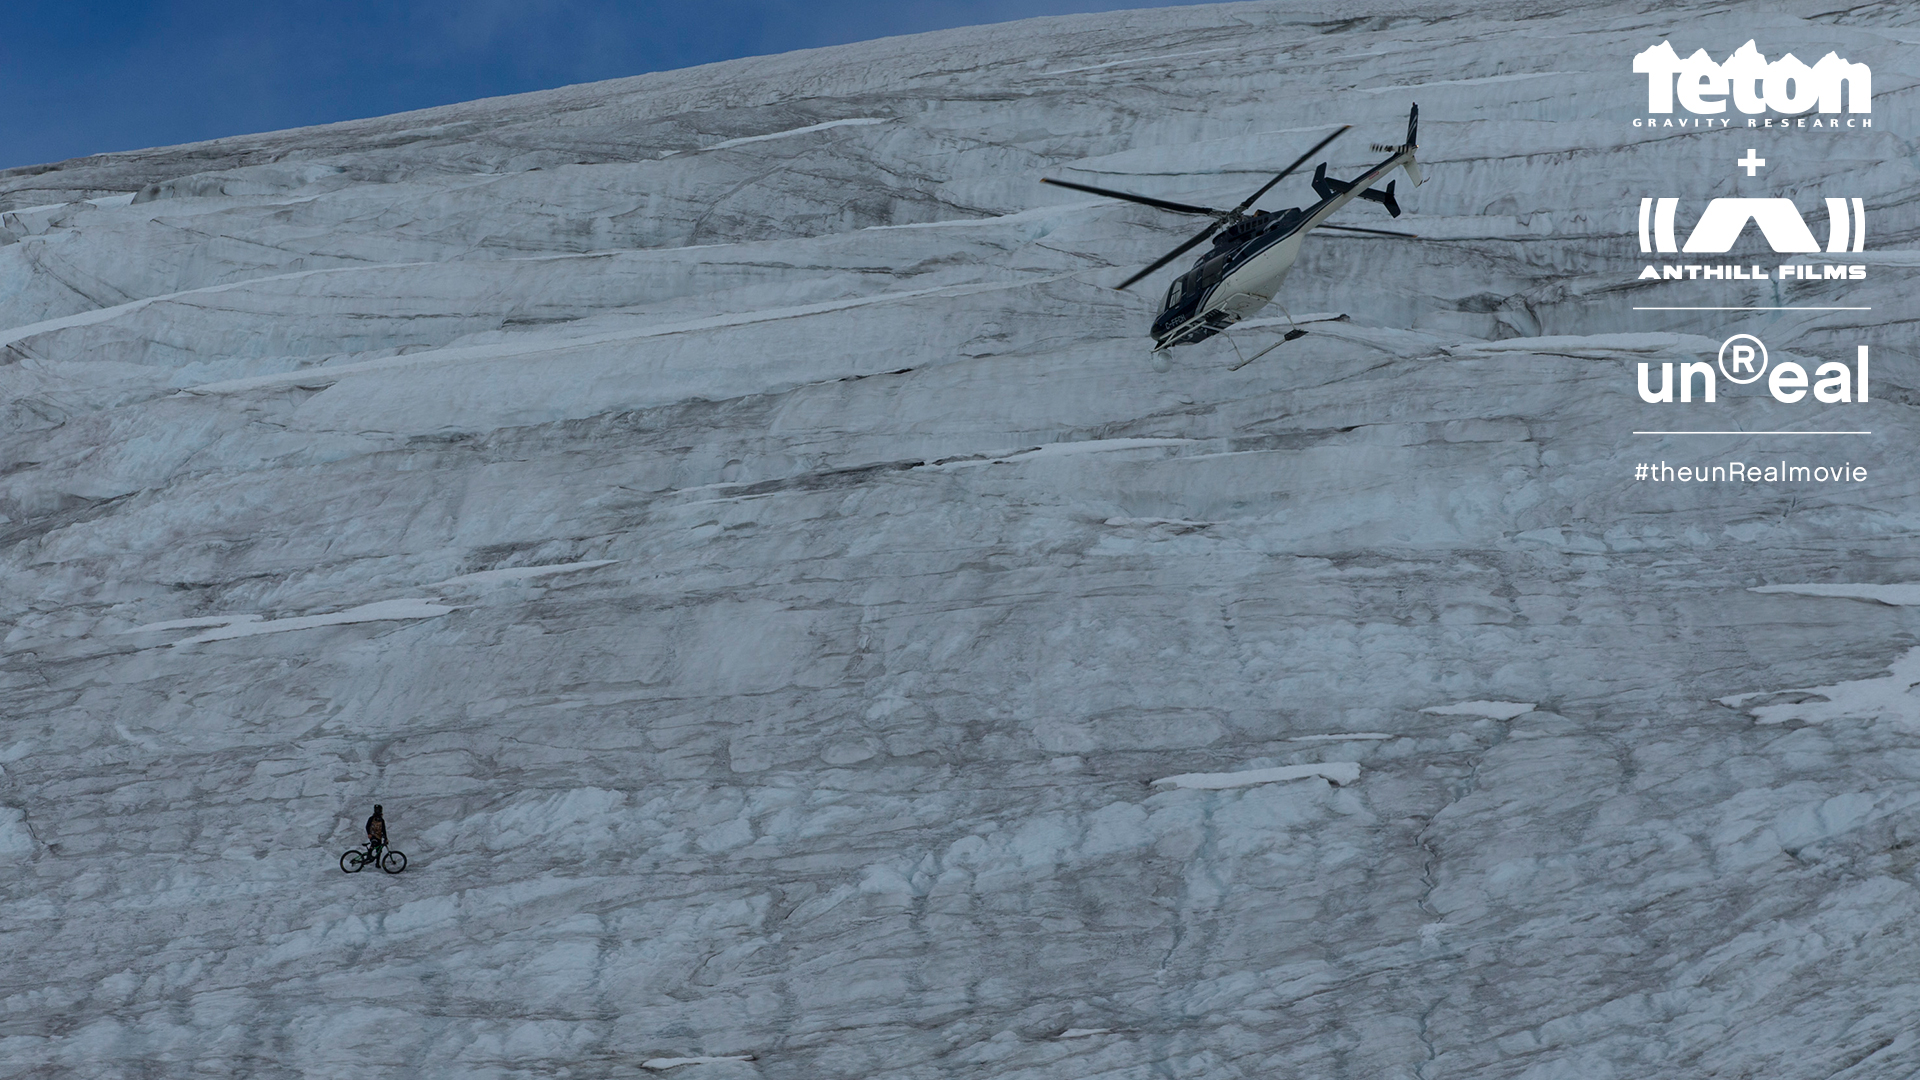 tgr-anthill-unreal-pr-images-waiting-glacier-heli